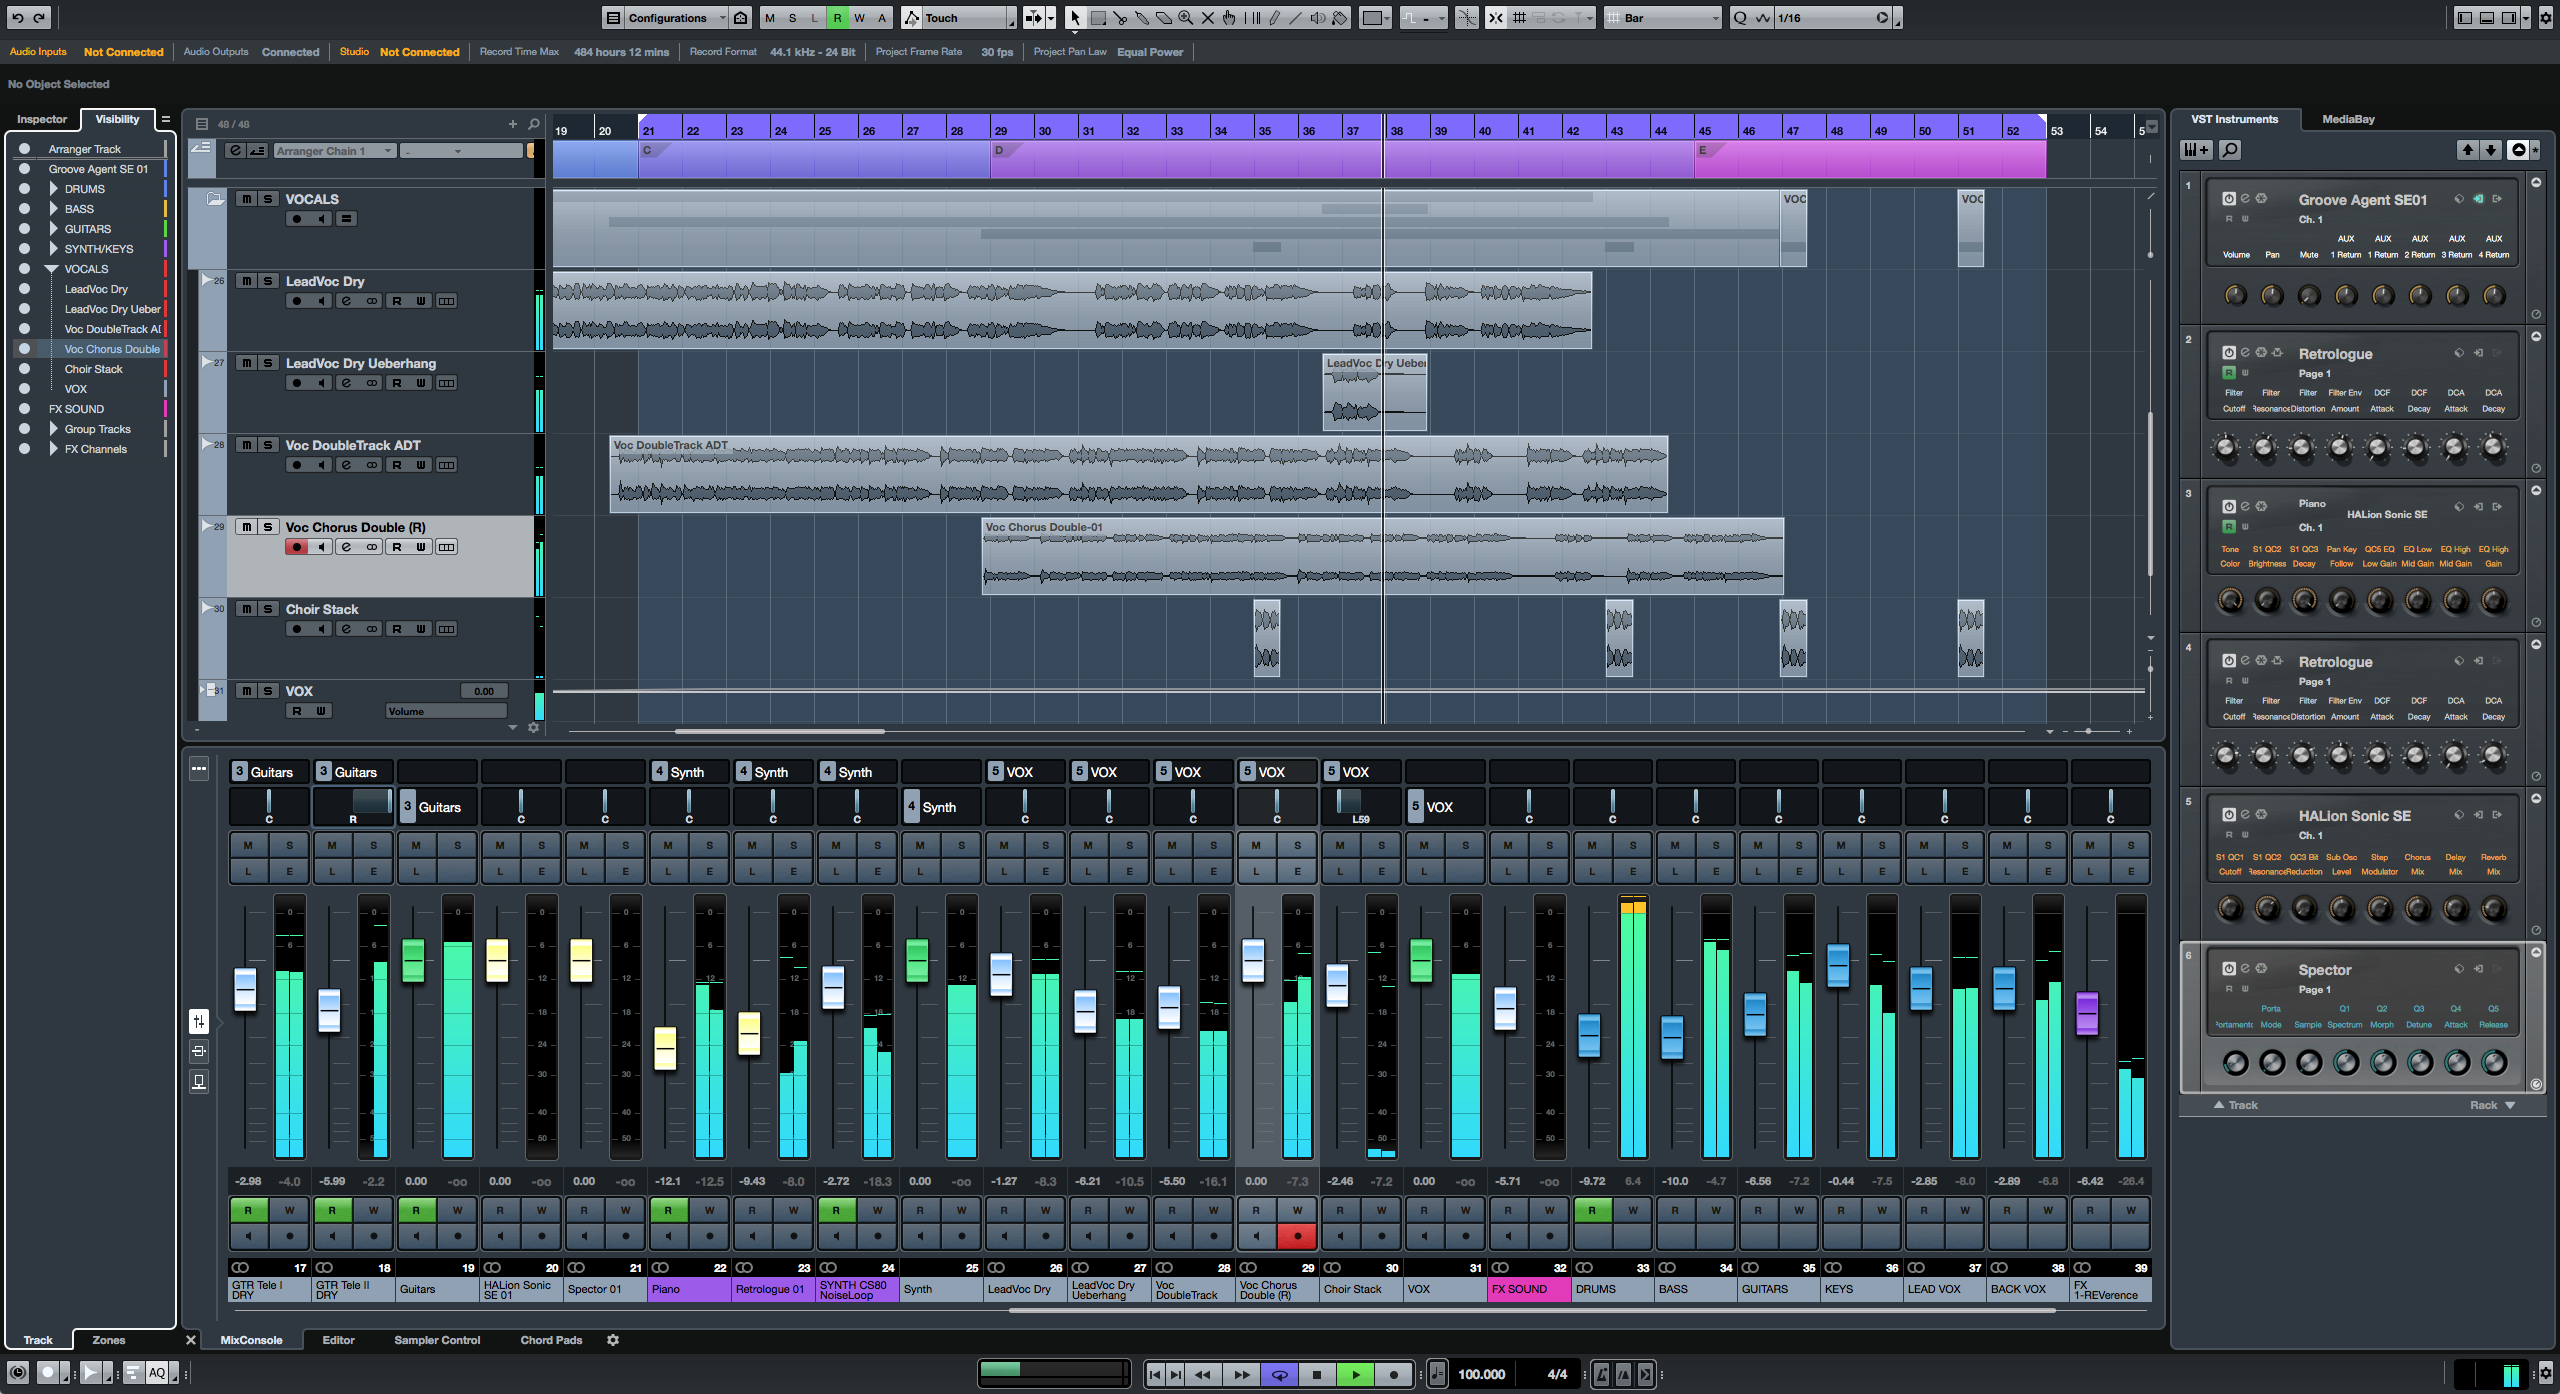 KVR: Steinberg releases Cubase 9 Music Production Software